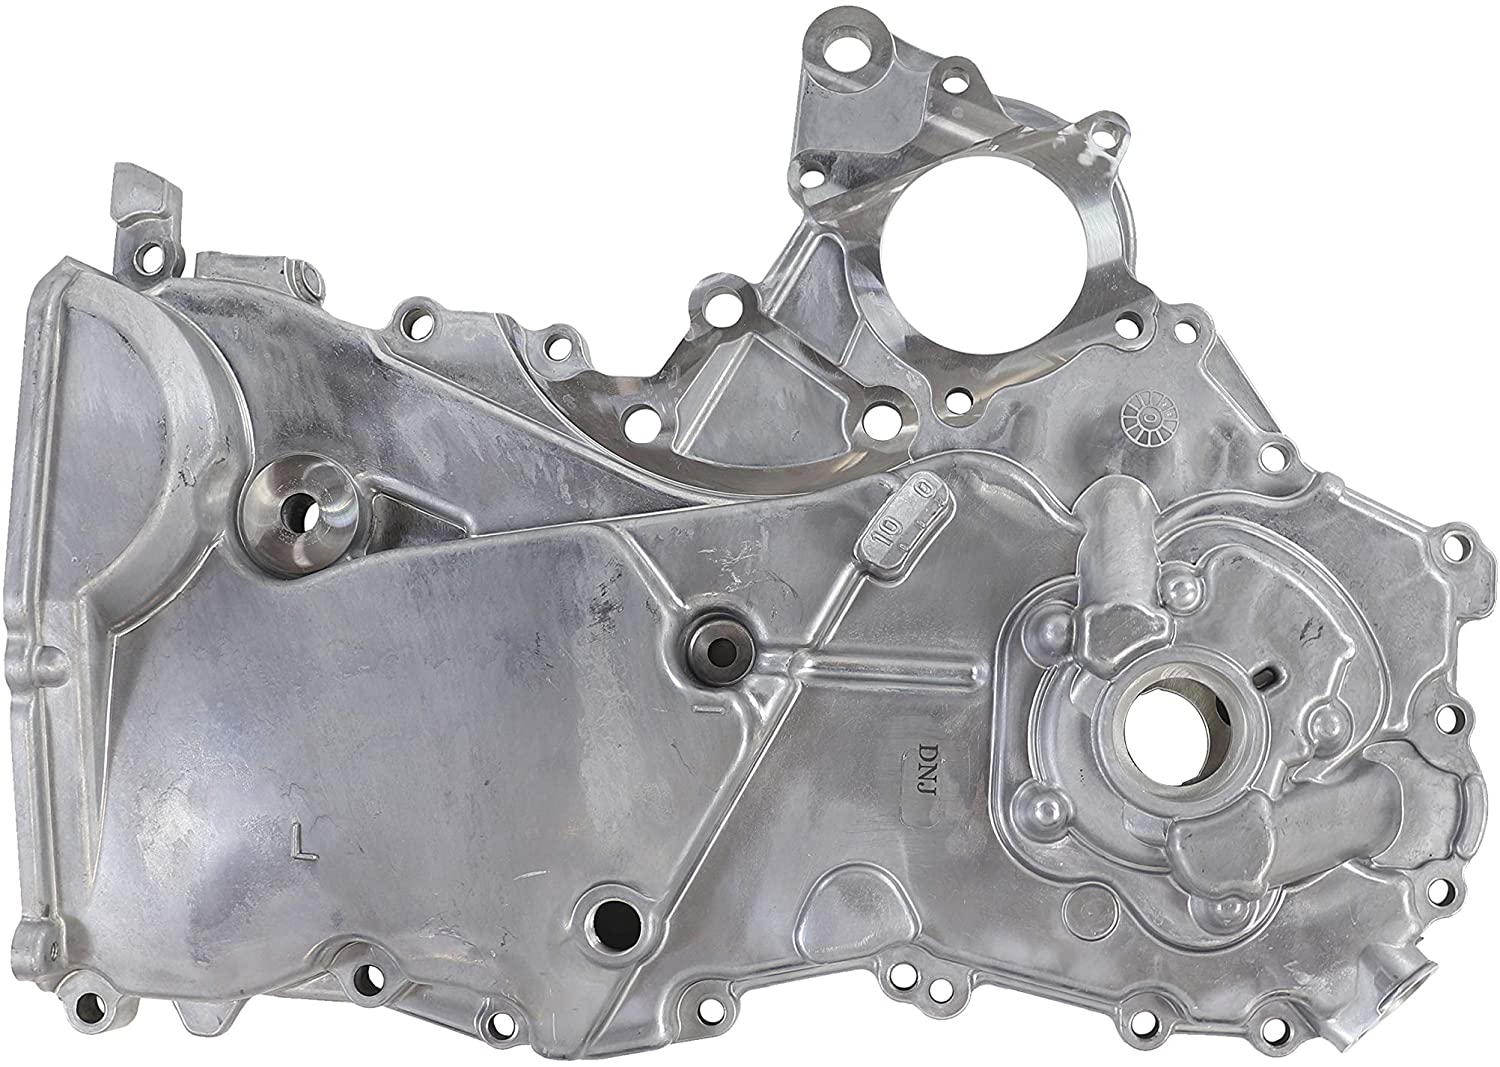 DNJ OP949 Oil Pump for 2000-2012 / Scion, Toyota/Echo, xA, xB, Yaris / 1.5L / DOHC / L4 / 16V / 1497cc / 1NZFE